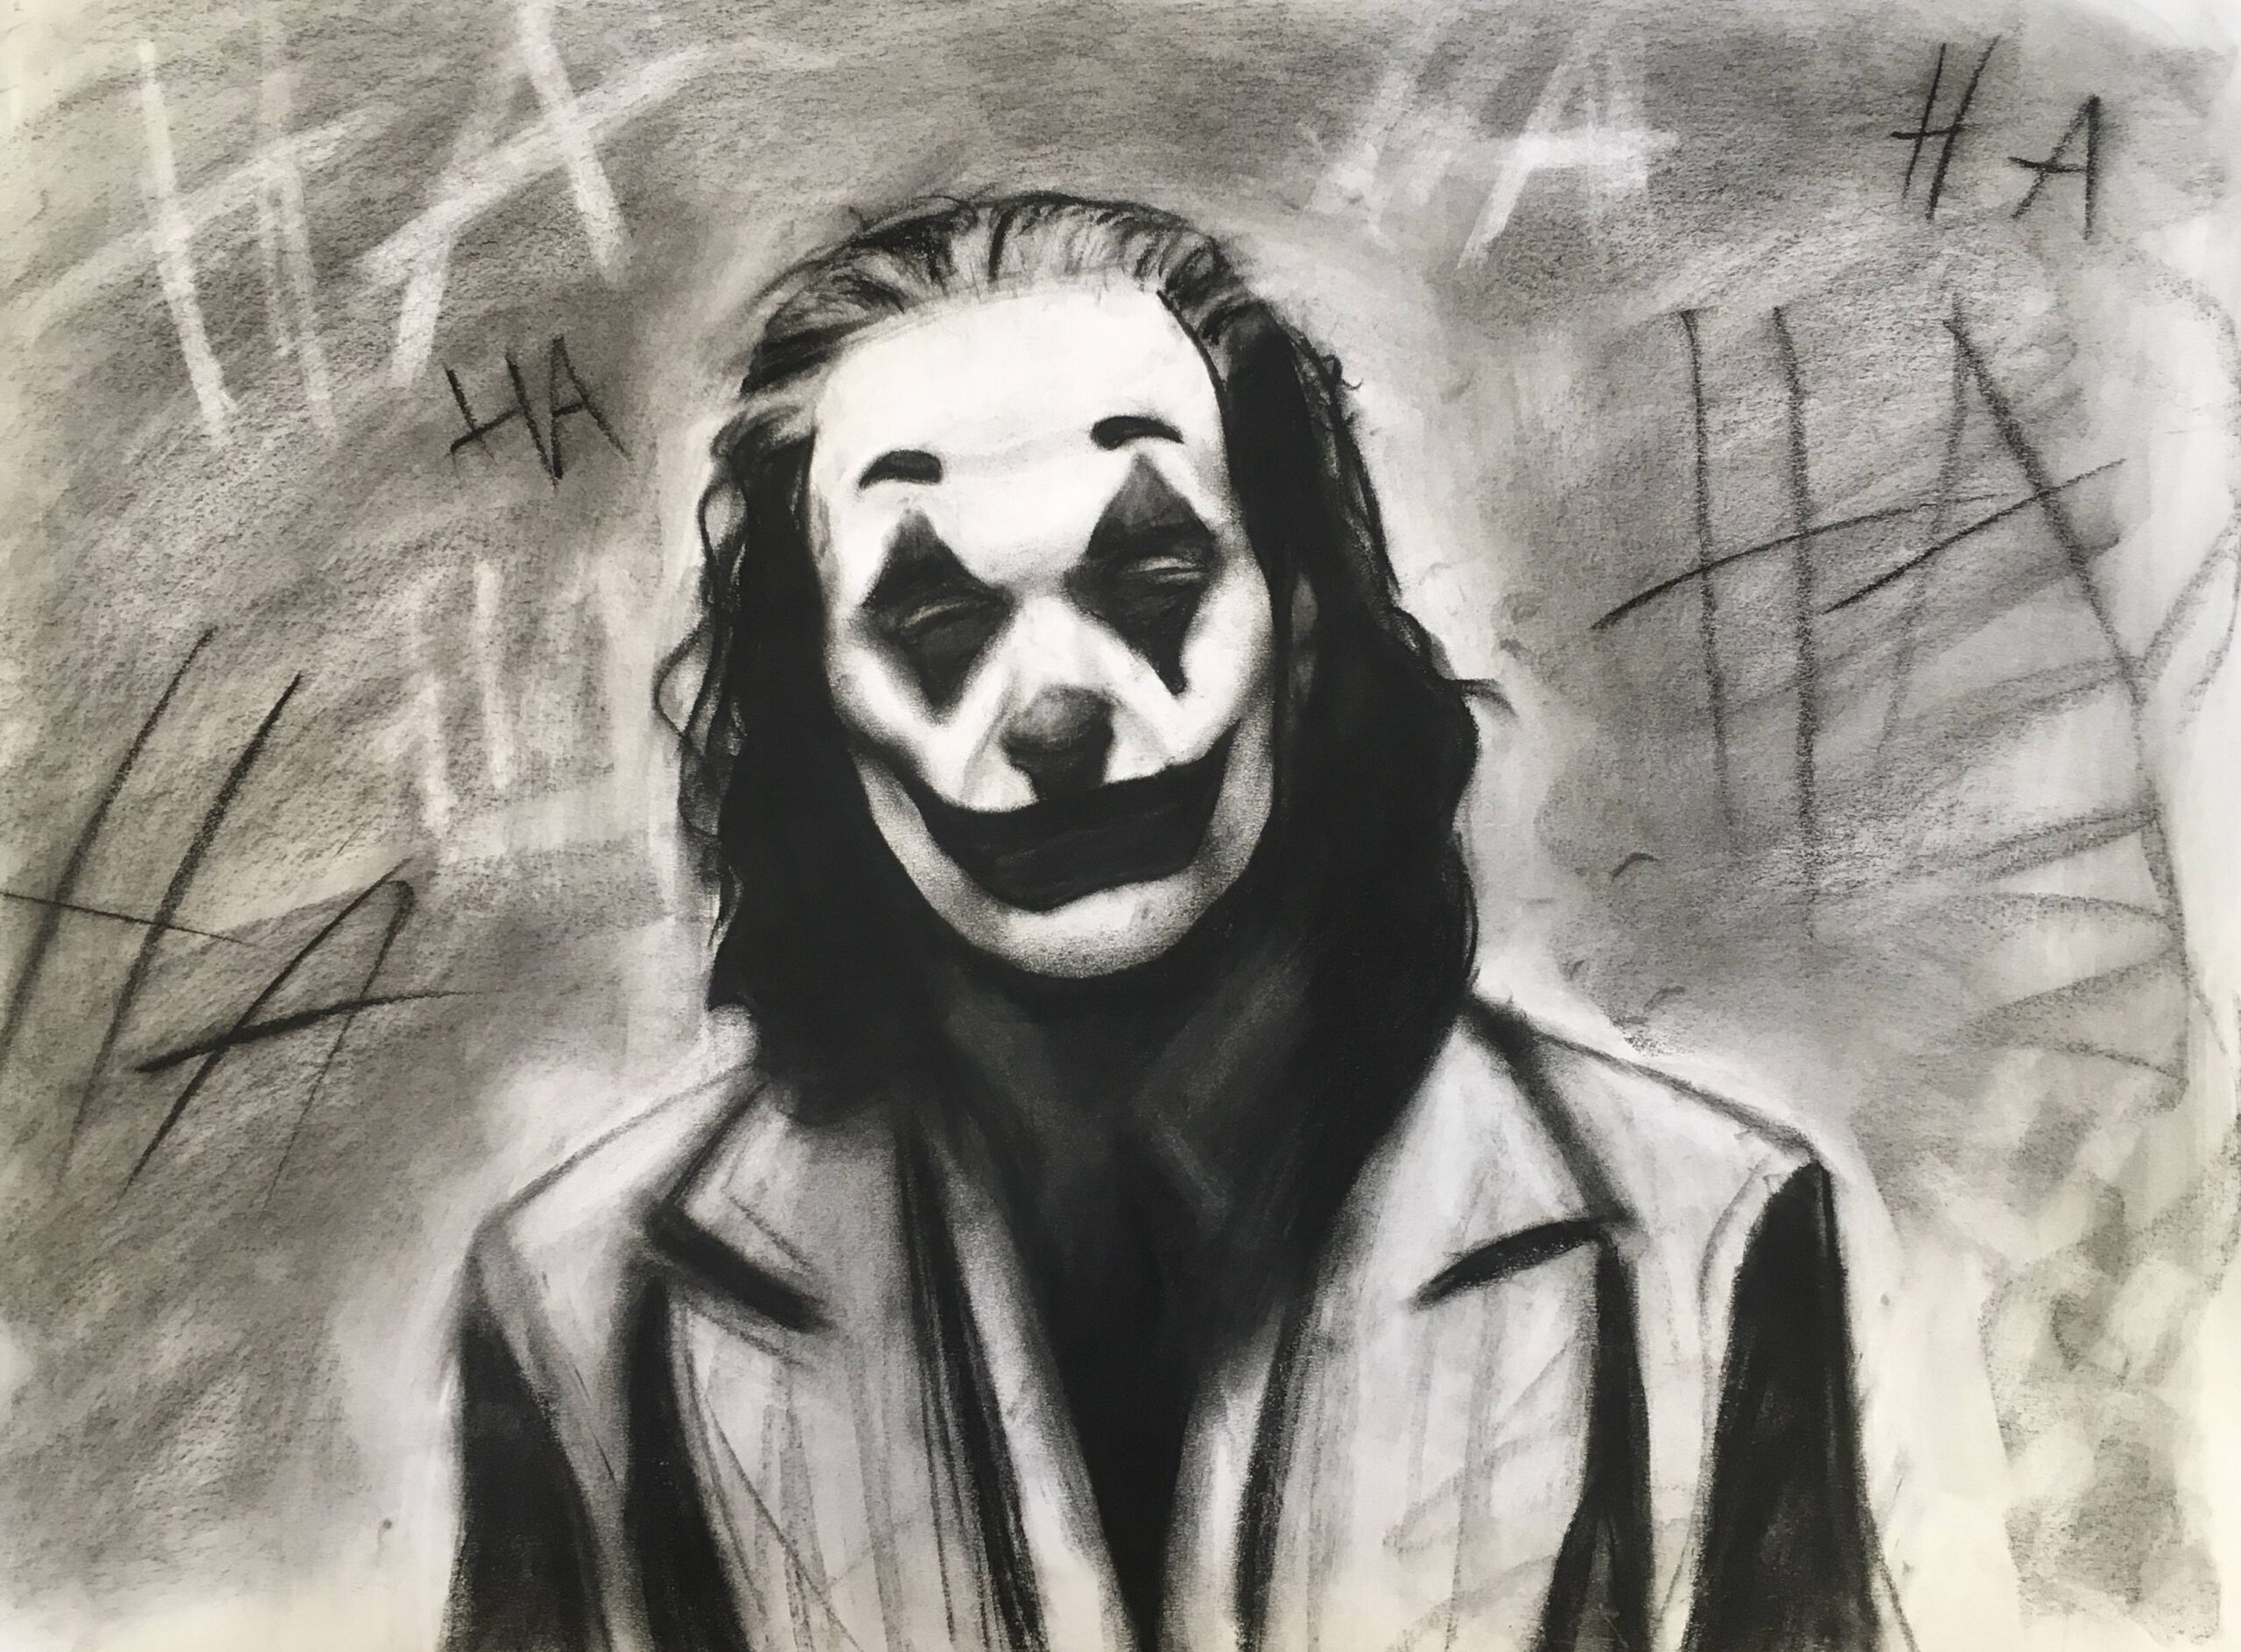 joker drawing with charcoals and other media